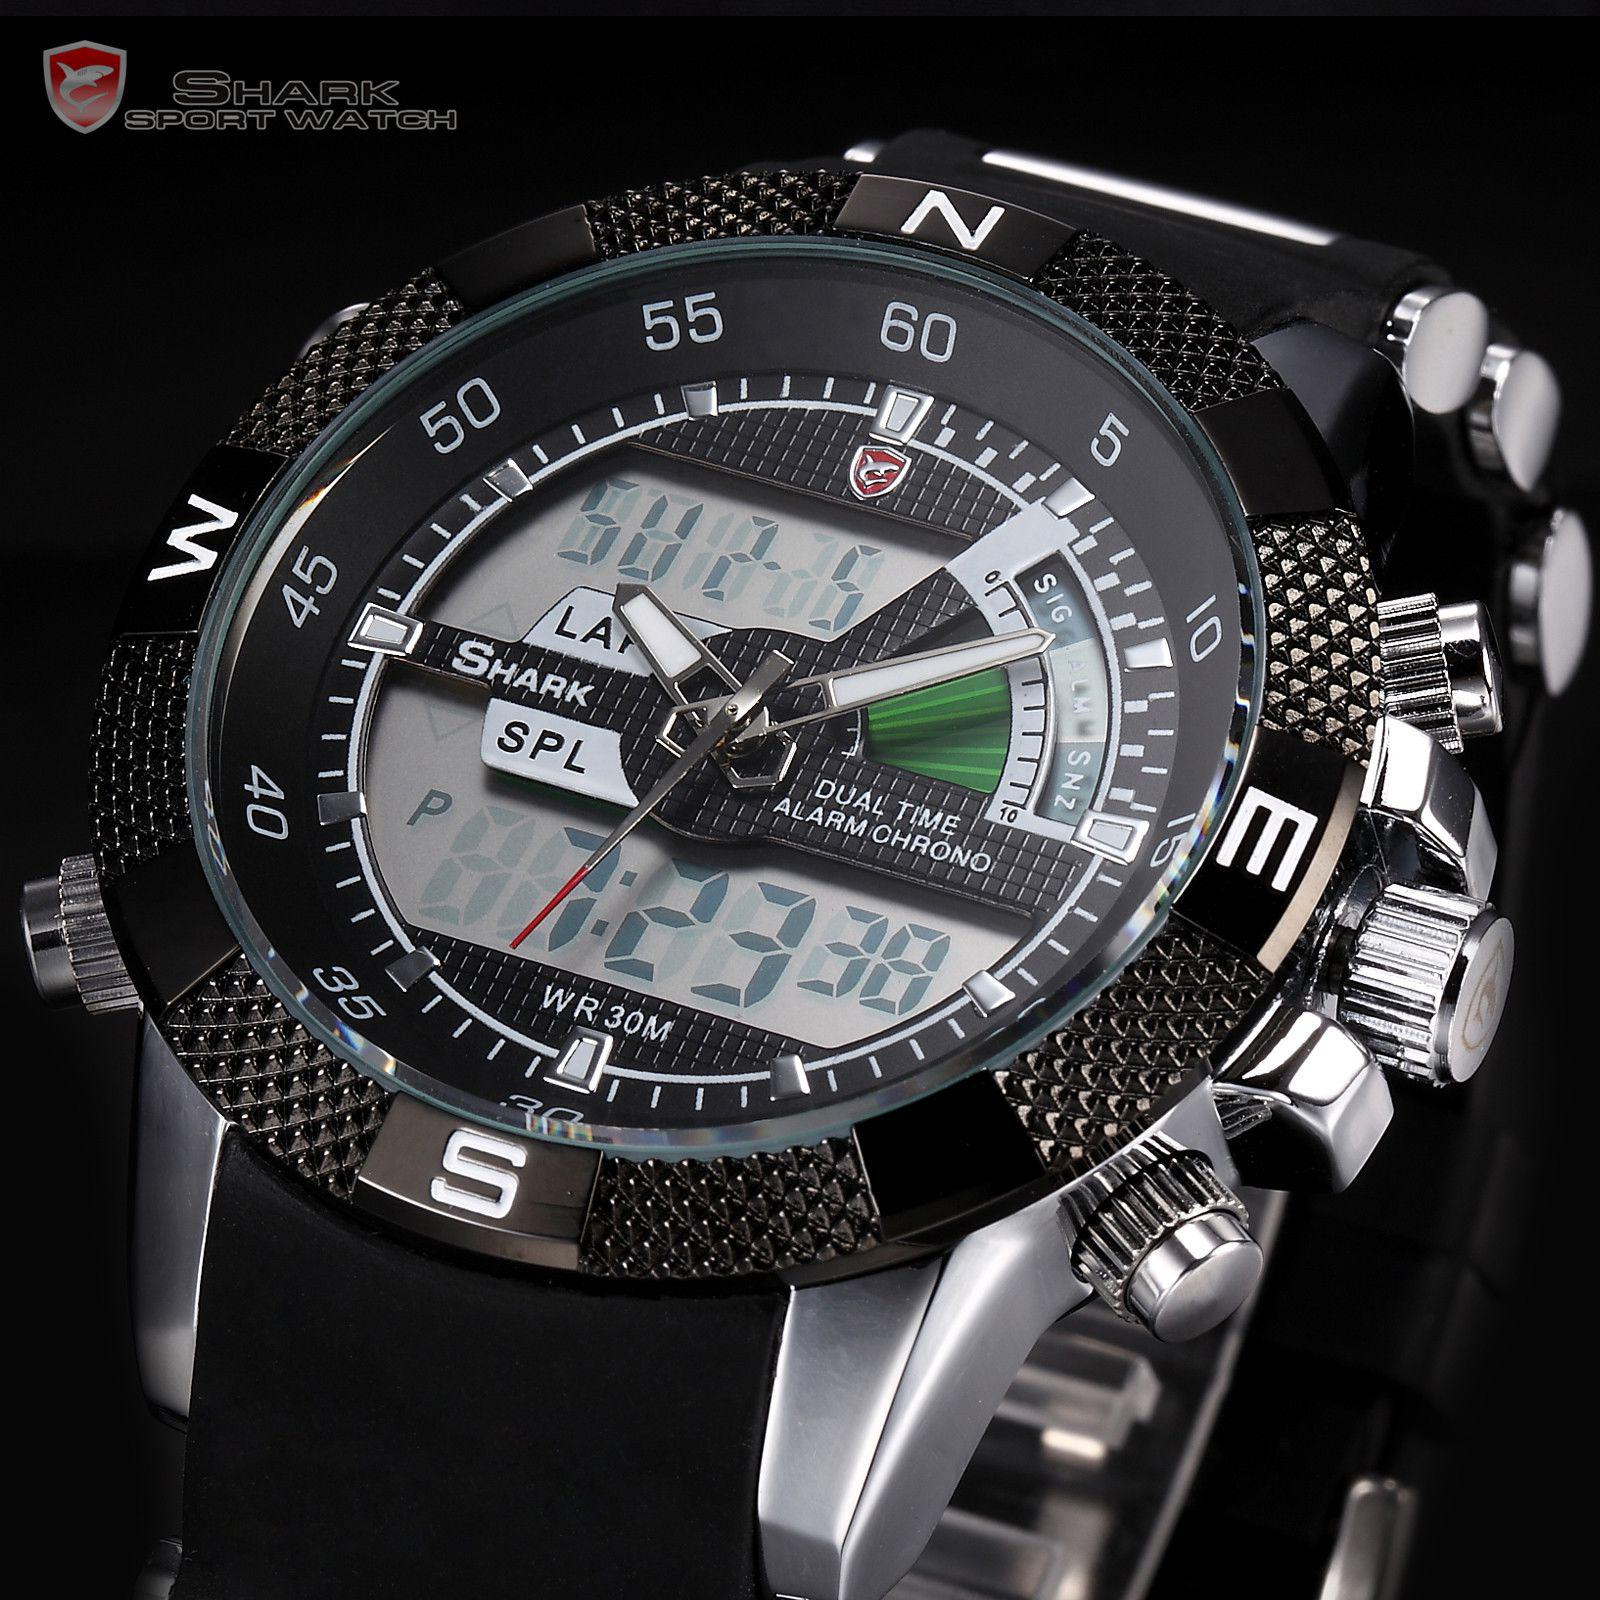 mens shark watch lcd digital analog dual time quartz sport rubber mens shark watch lcd digital analog dual time quartz sport rubber band wrist watch sh042 watch sport watch men watch online 41 36 piece on